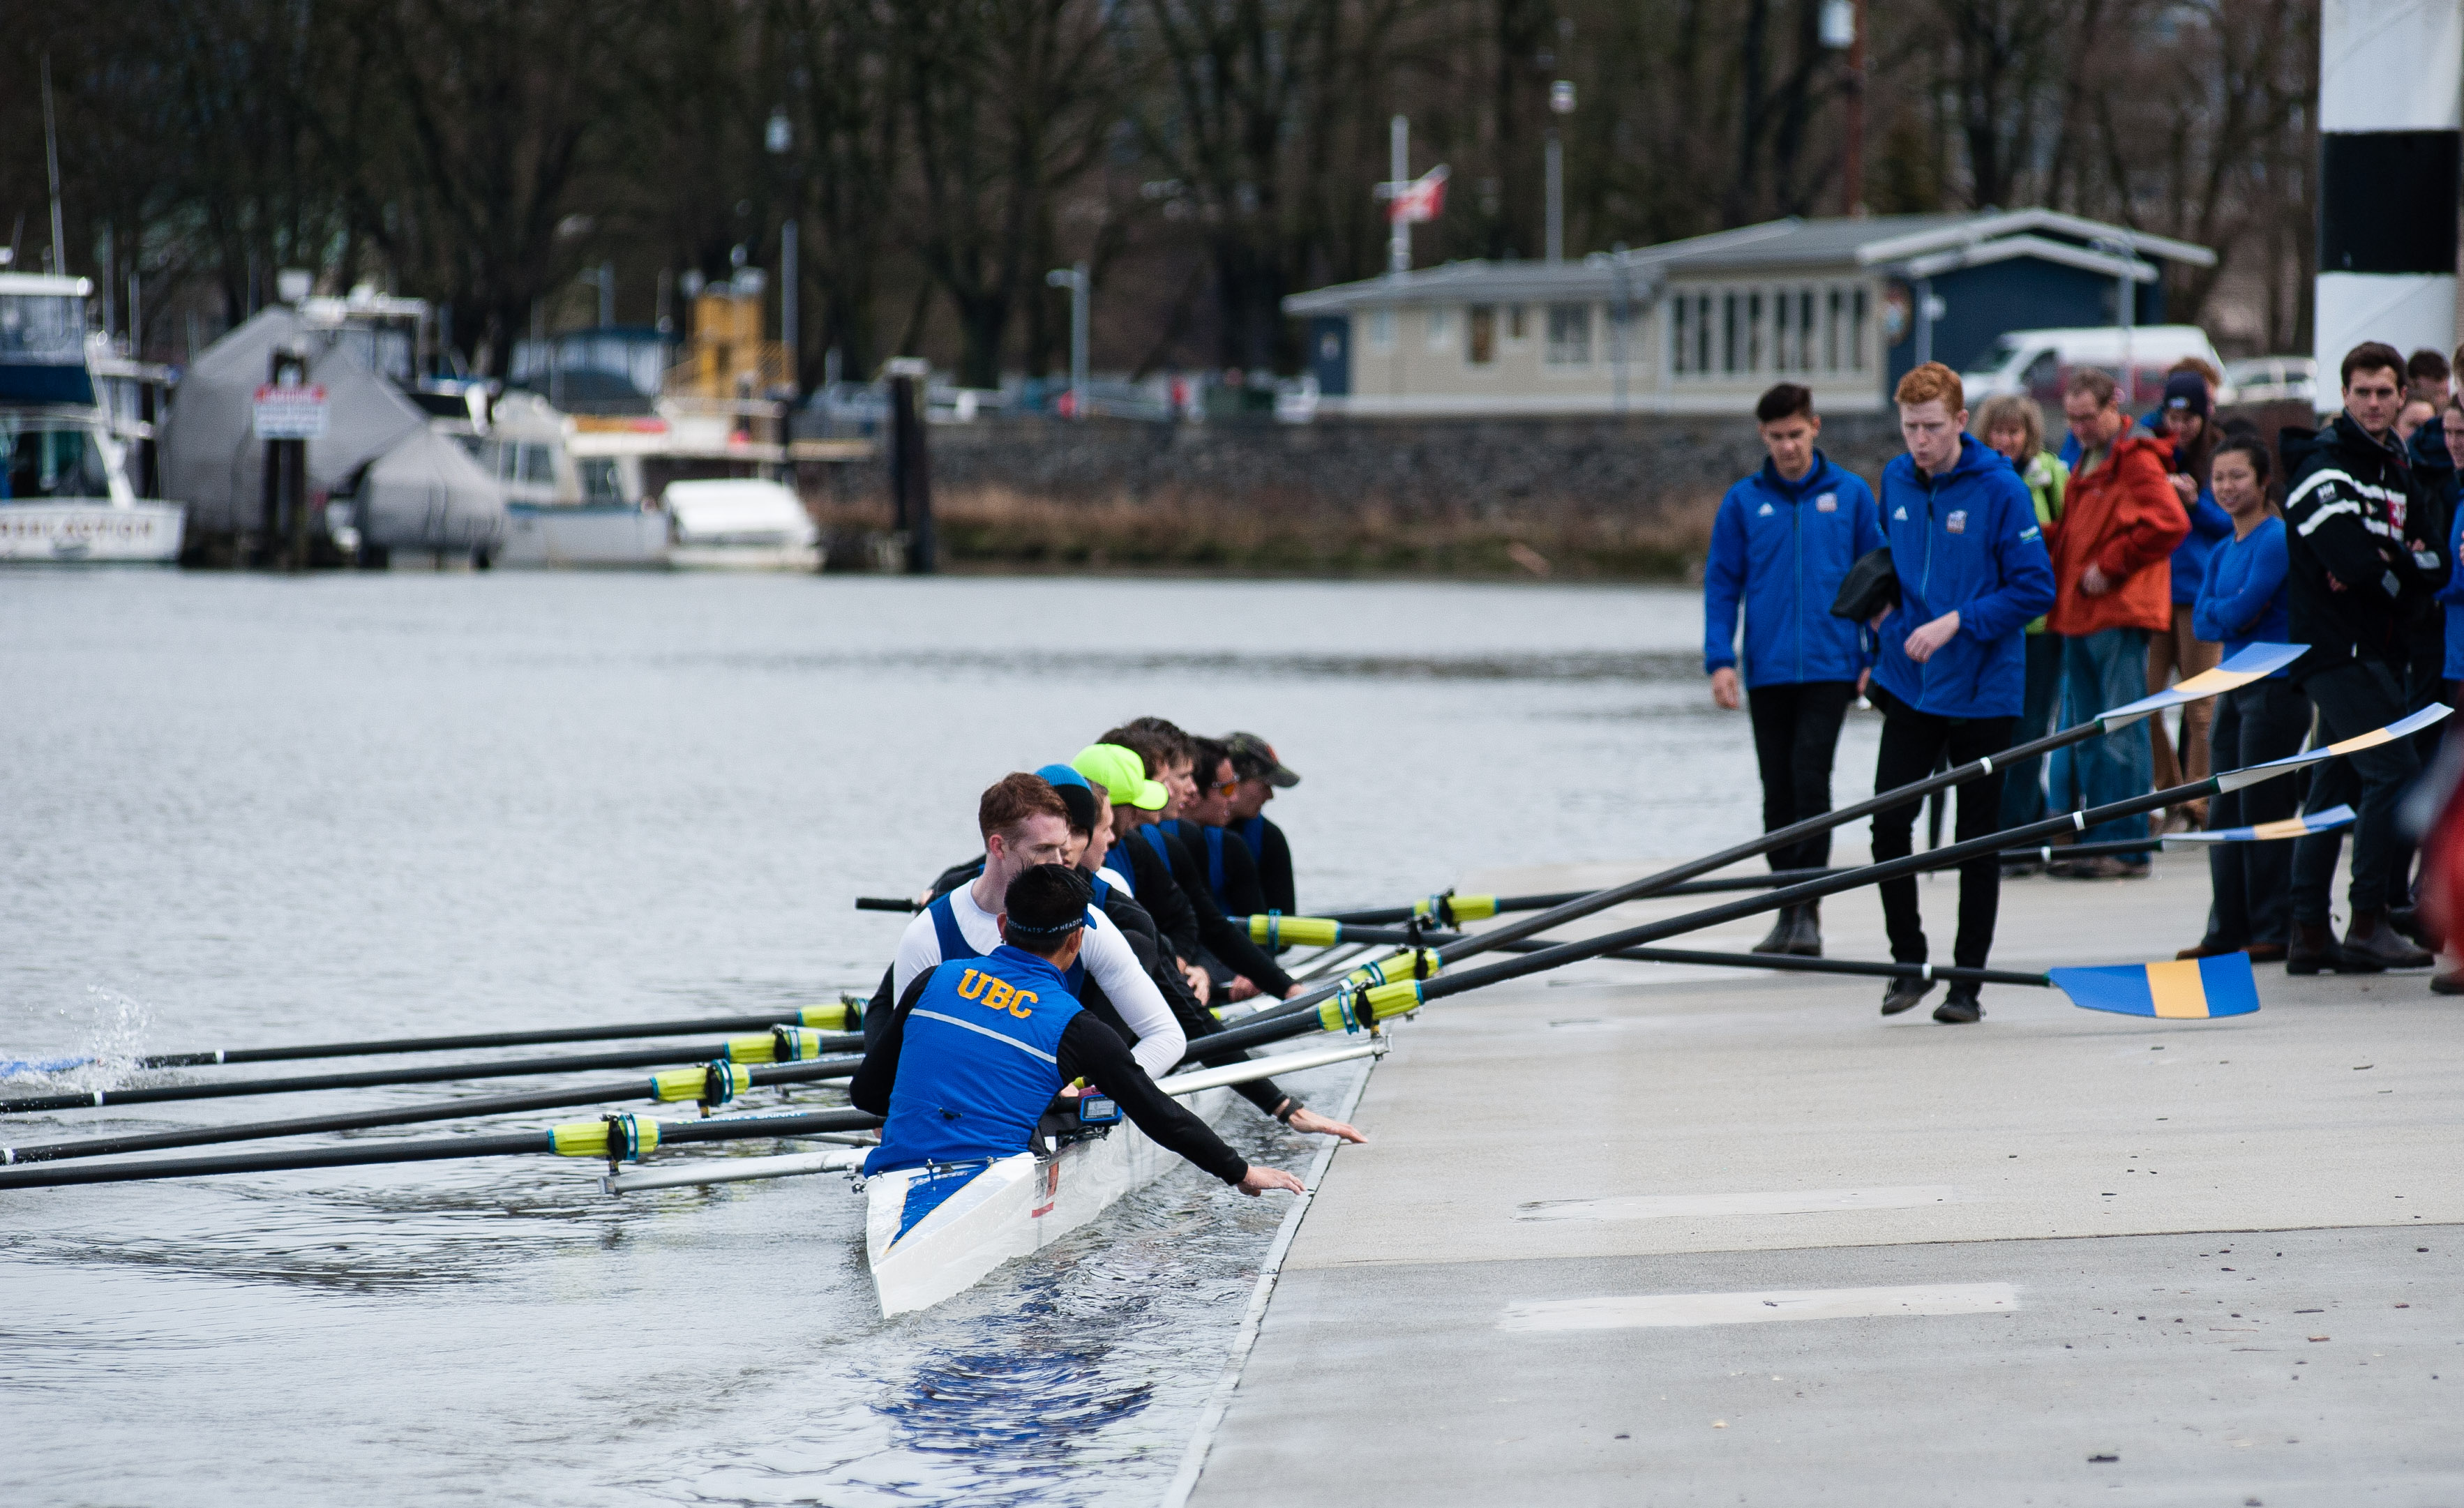 The Thunderbird varsity men's crew heads back to the boathouse post-race.